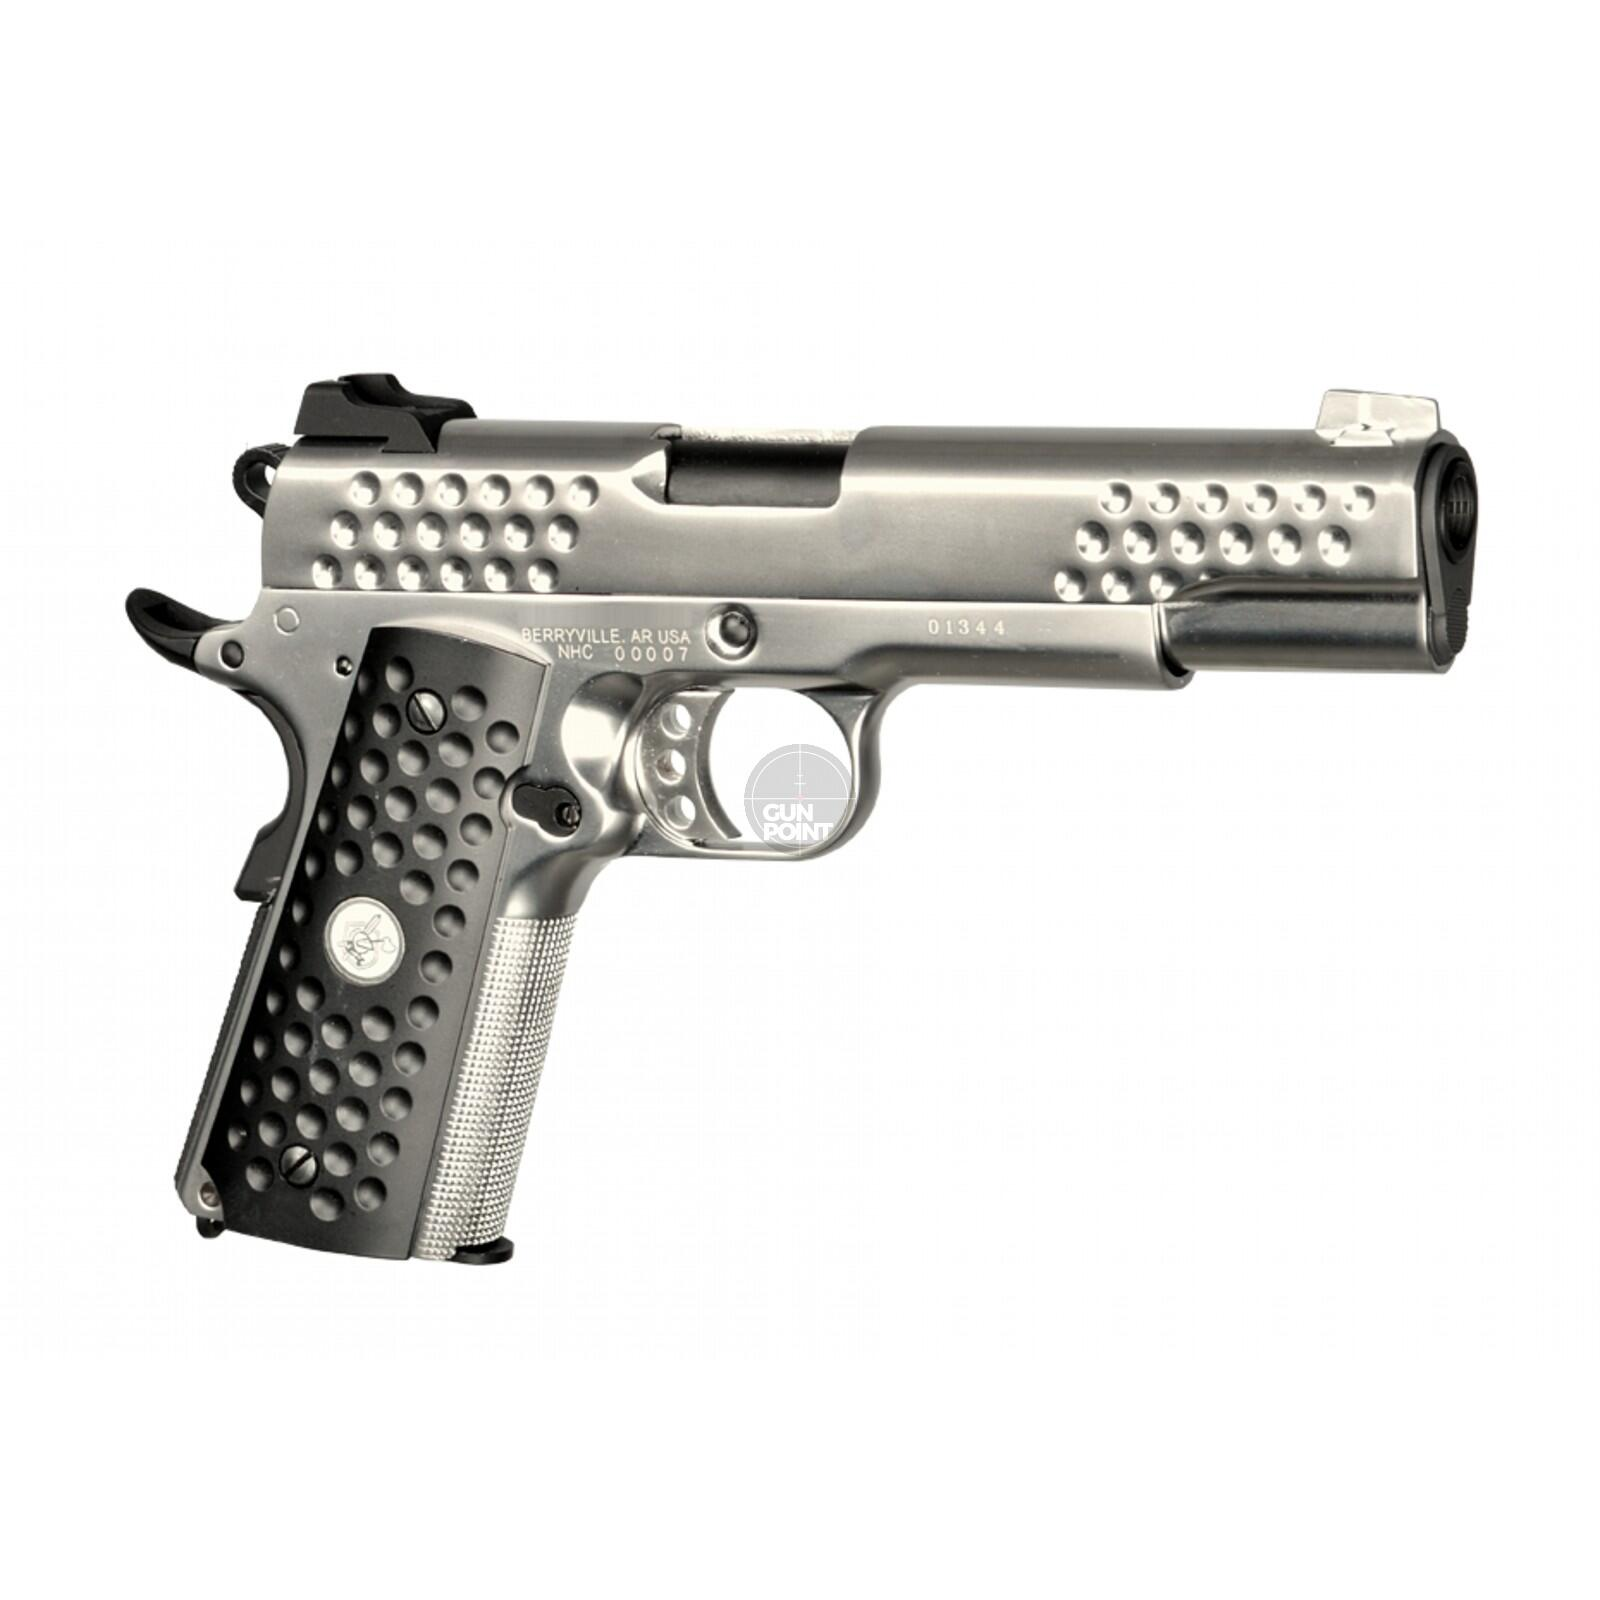 Softair - Pistole - WE - Knight Hawk Full Metal GBB silver - ab 18, über 0,5 Joule